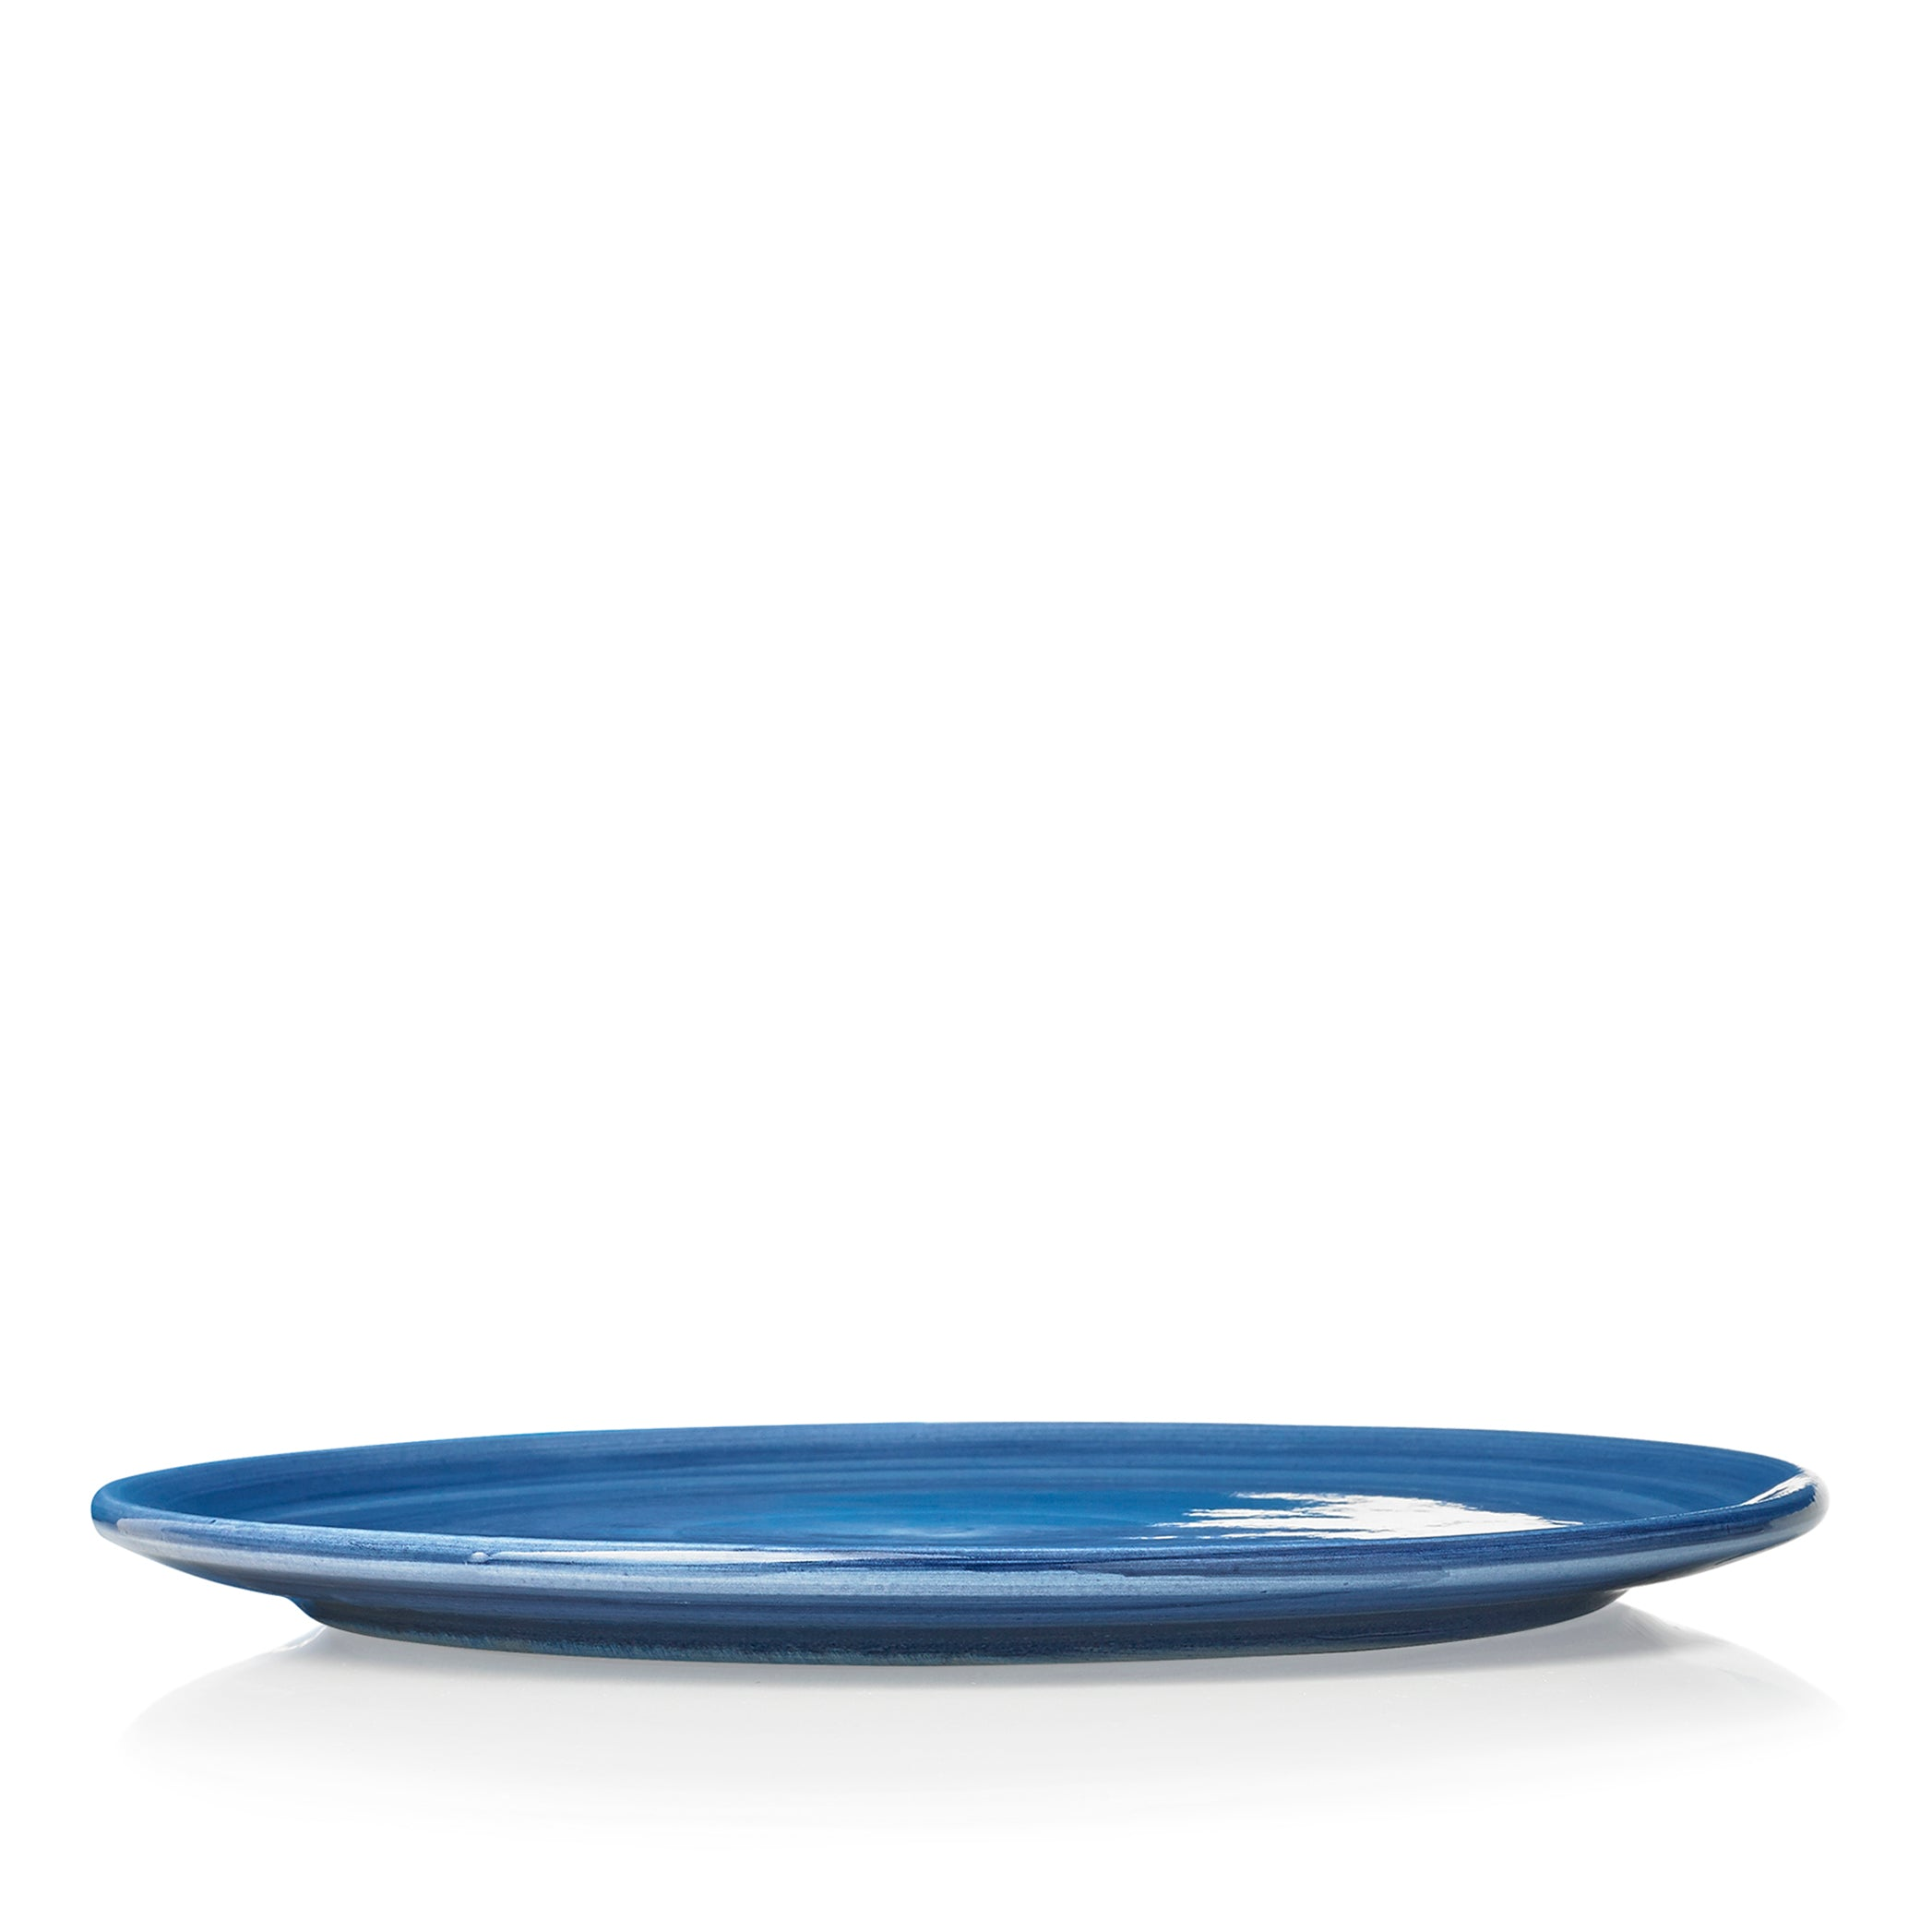 "S&B ""La Couronne"" 29cm Ceramic Tart / Cake Plate in Blue"